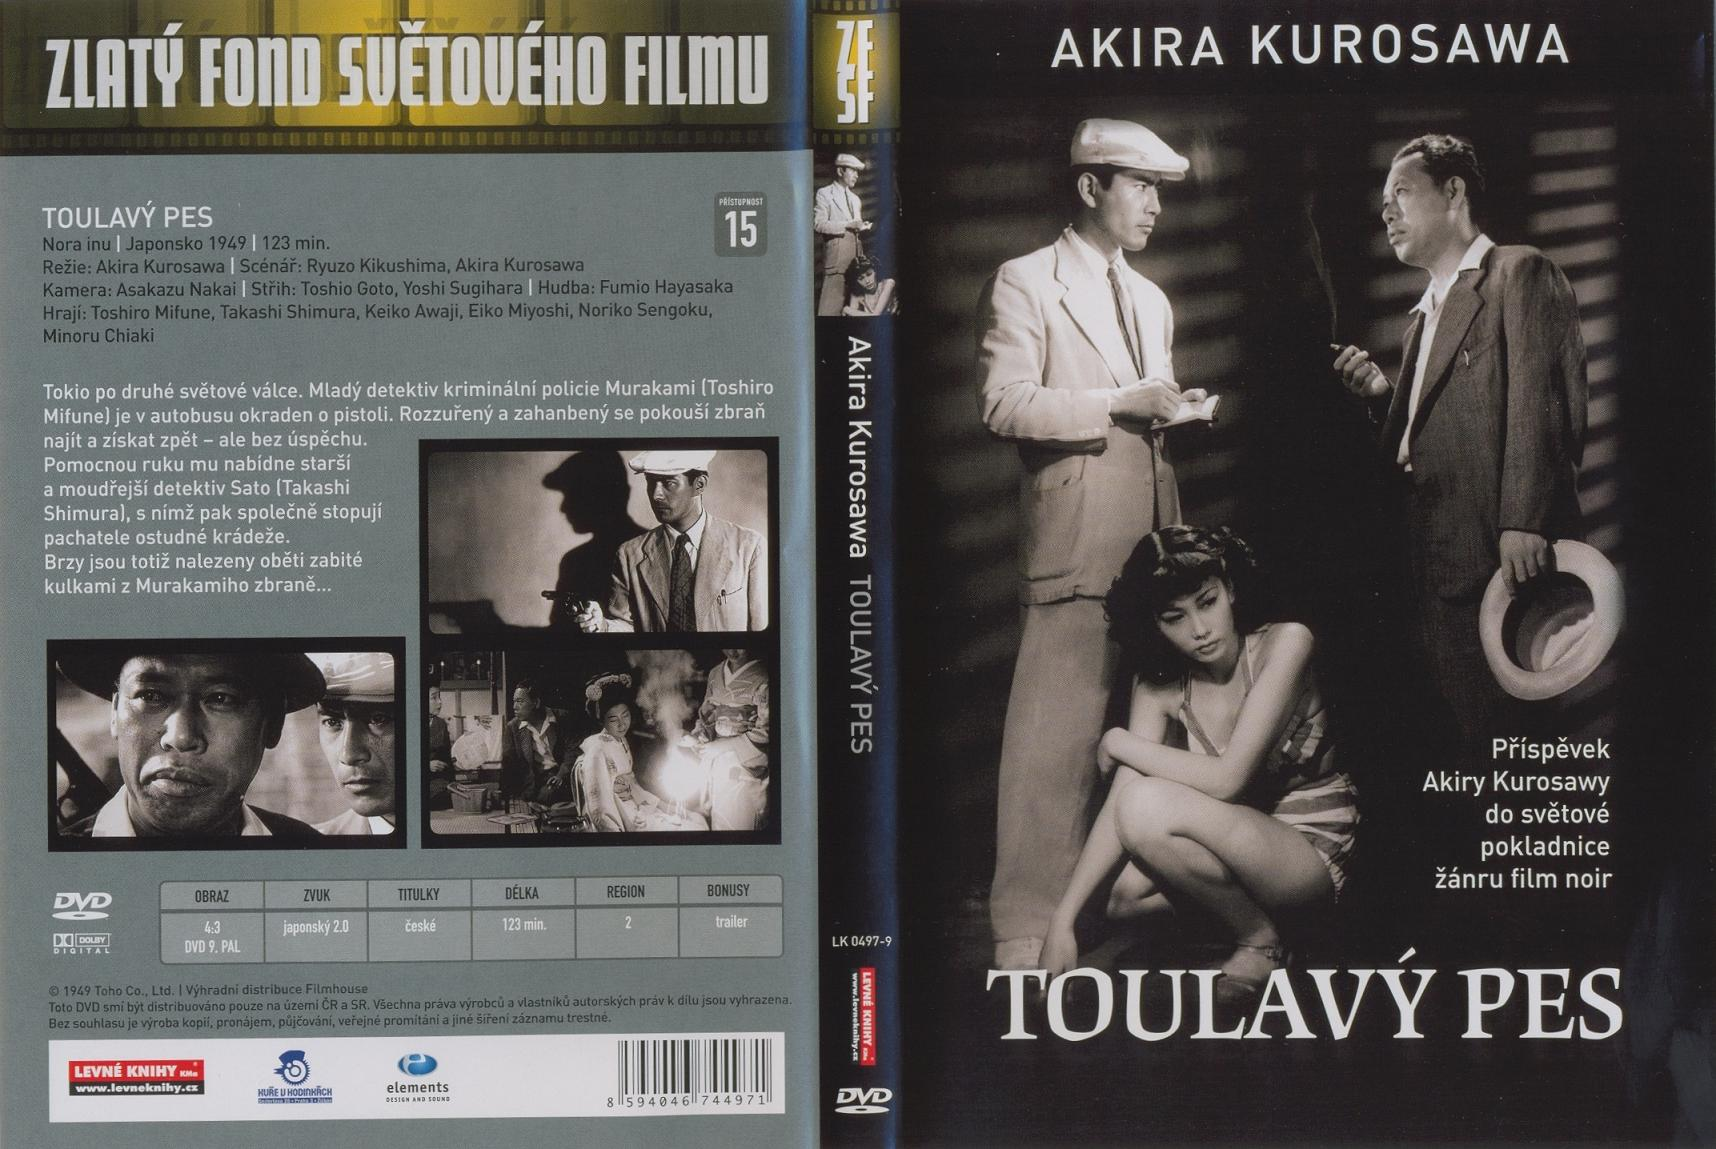 an essay on the film stray dog by akira kurosawa Akira kurosawa 's classic police procedural starring a luminous toshiro mifune stray dog plunges deep into the anxiety and moral ambiguity of film ugetsu.